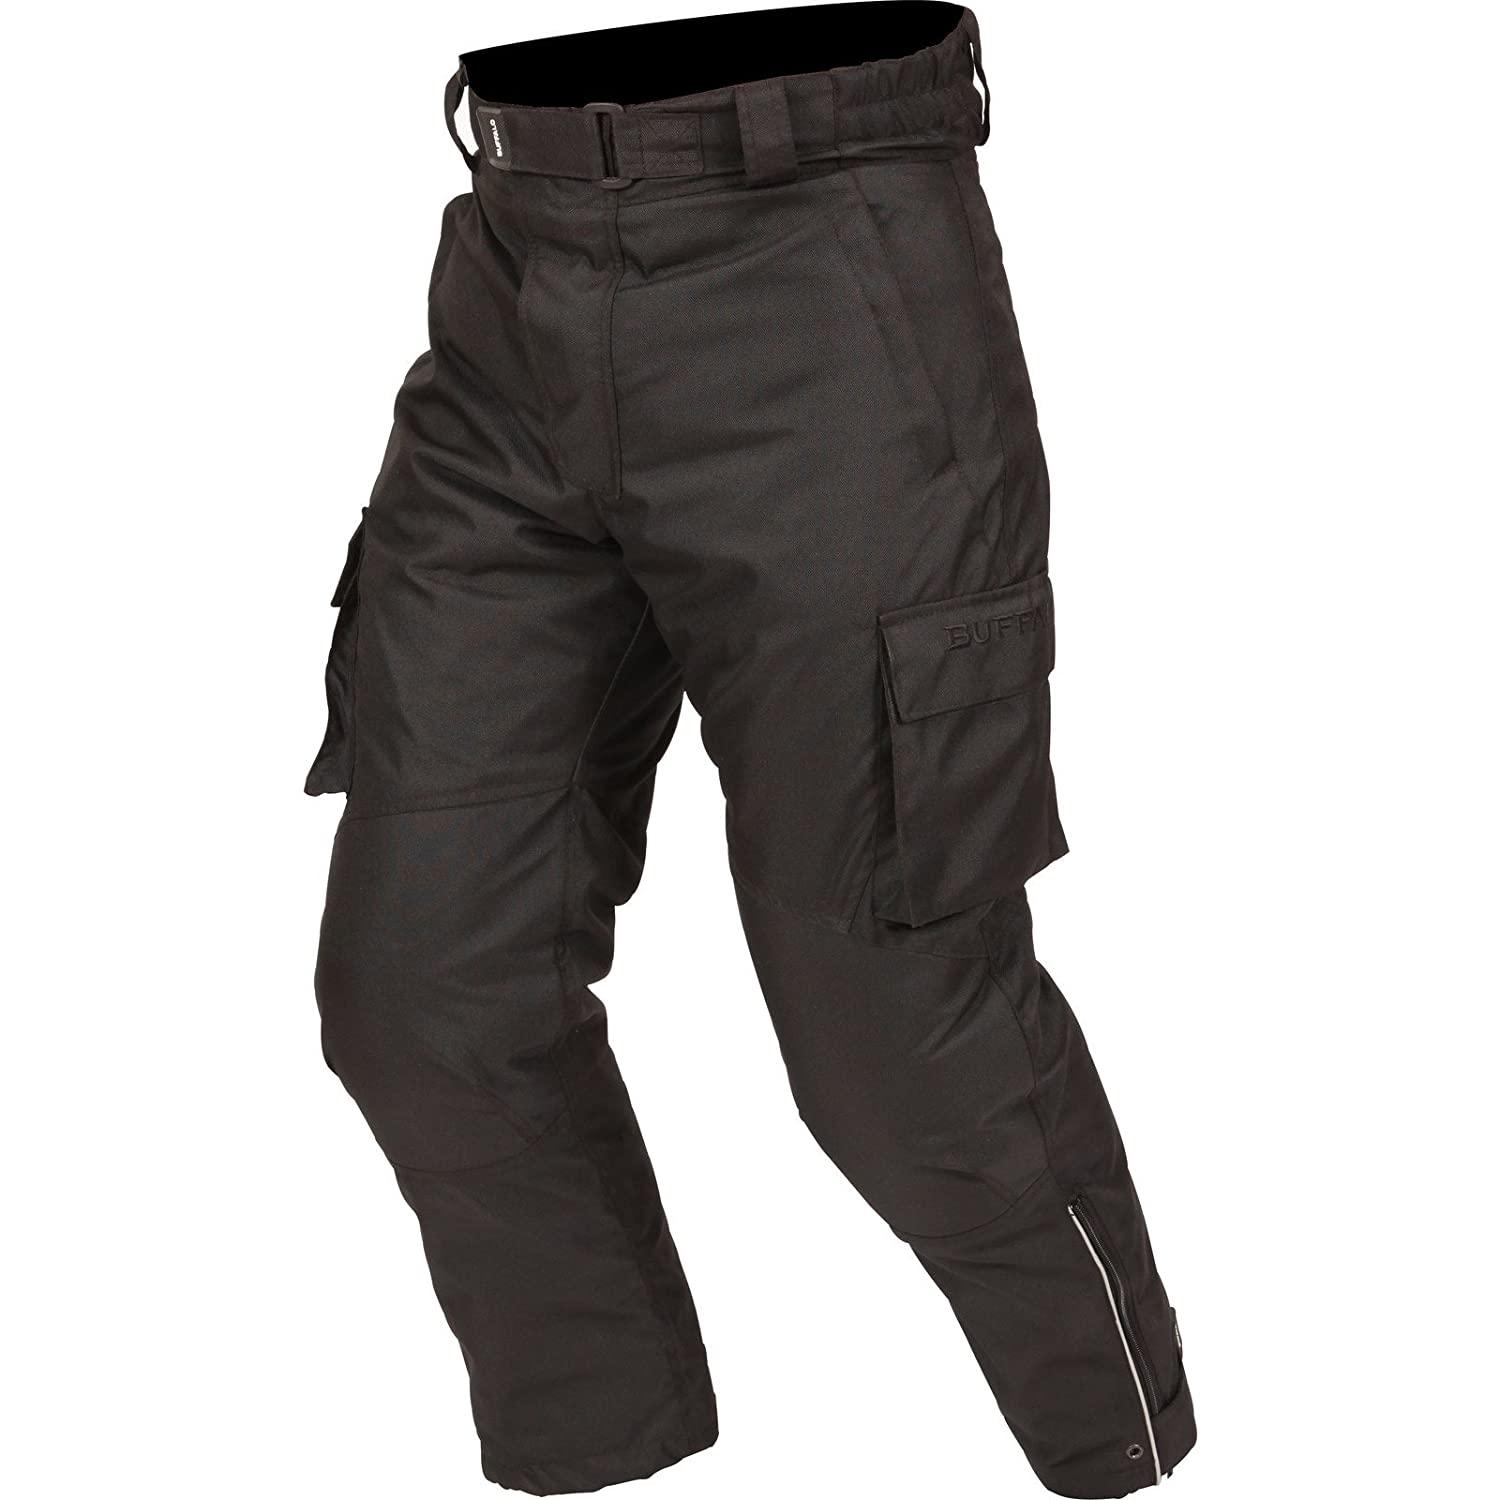 Mr.Pro Profirst CE Approved All Weather Waterproof Armoured Motorbike Motorcycle Trouser Pant with Removable Lining